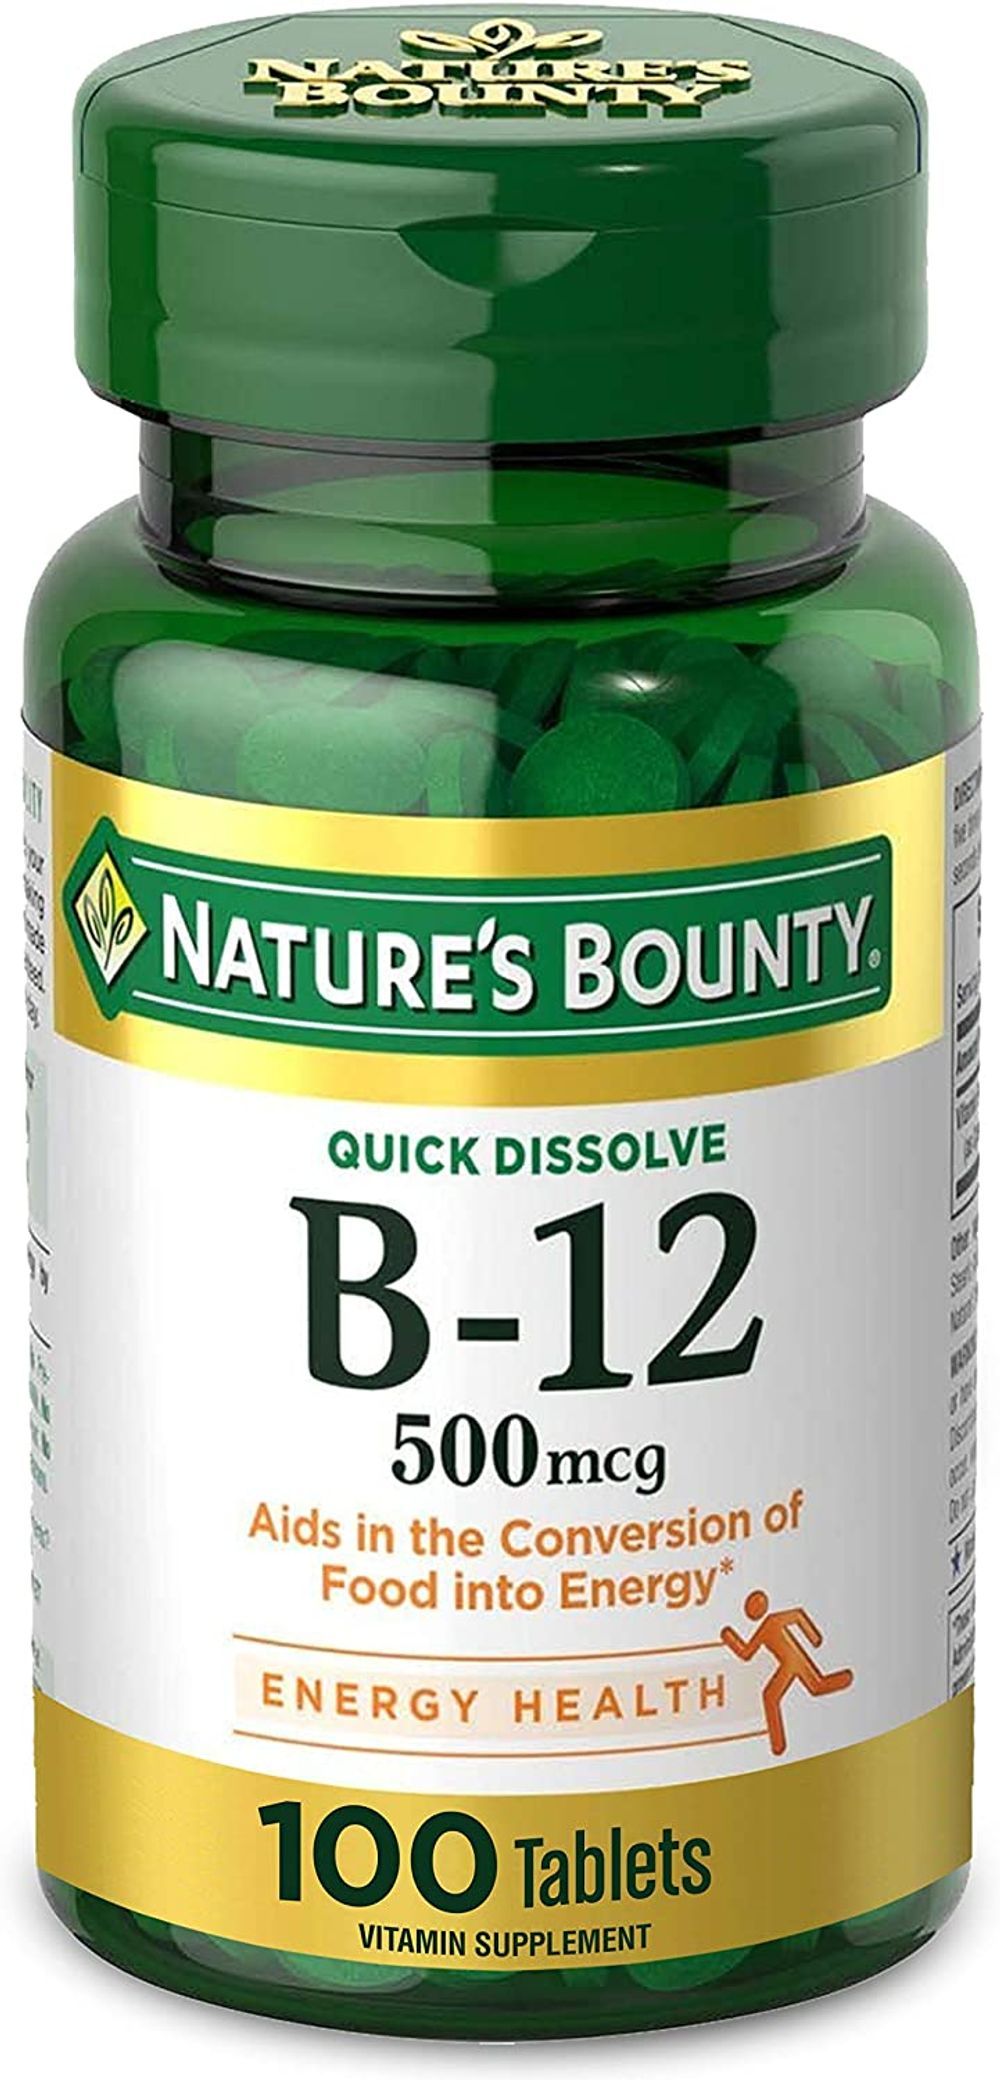 Nature's Bounty Vitamin B-12 Supplement, Supports Metabolism and Nervous System Health, 500mcg, 100 Tablets